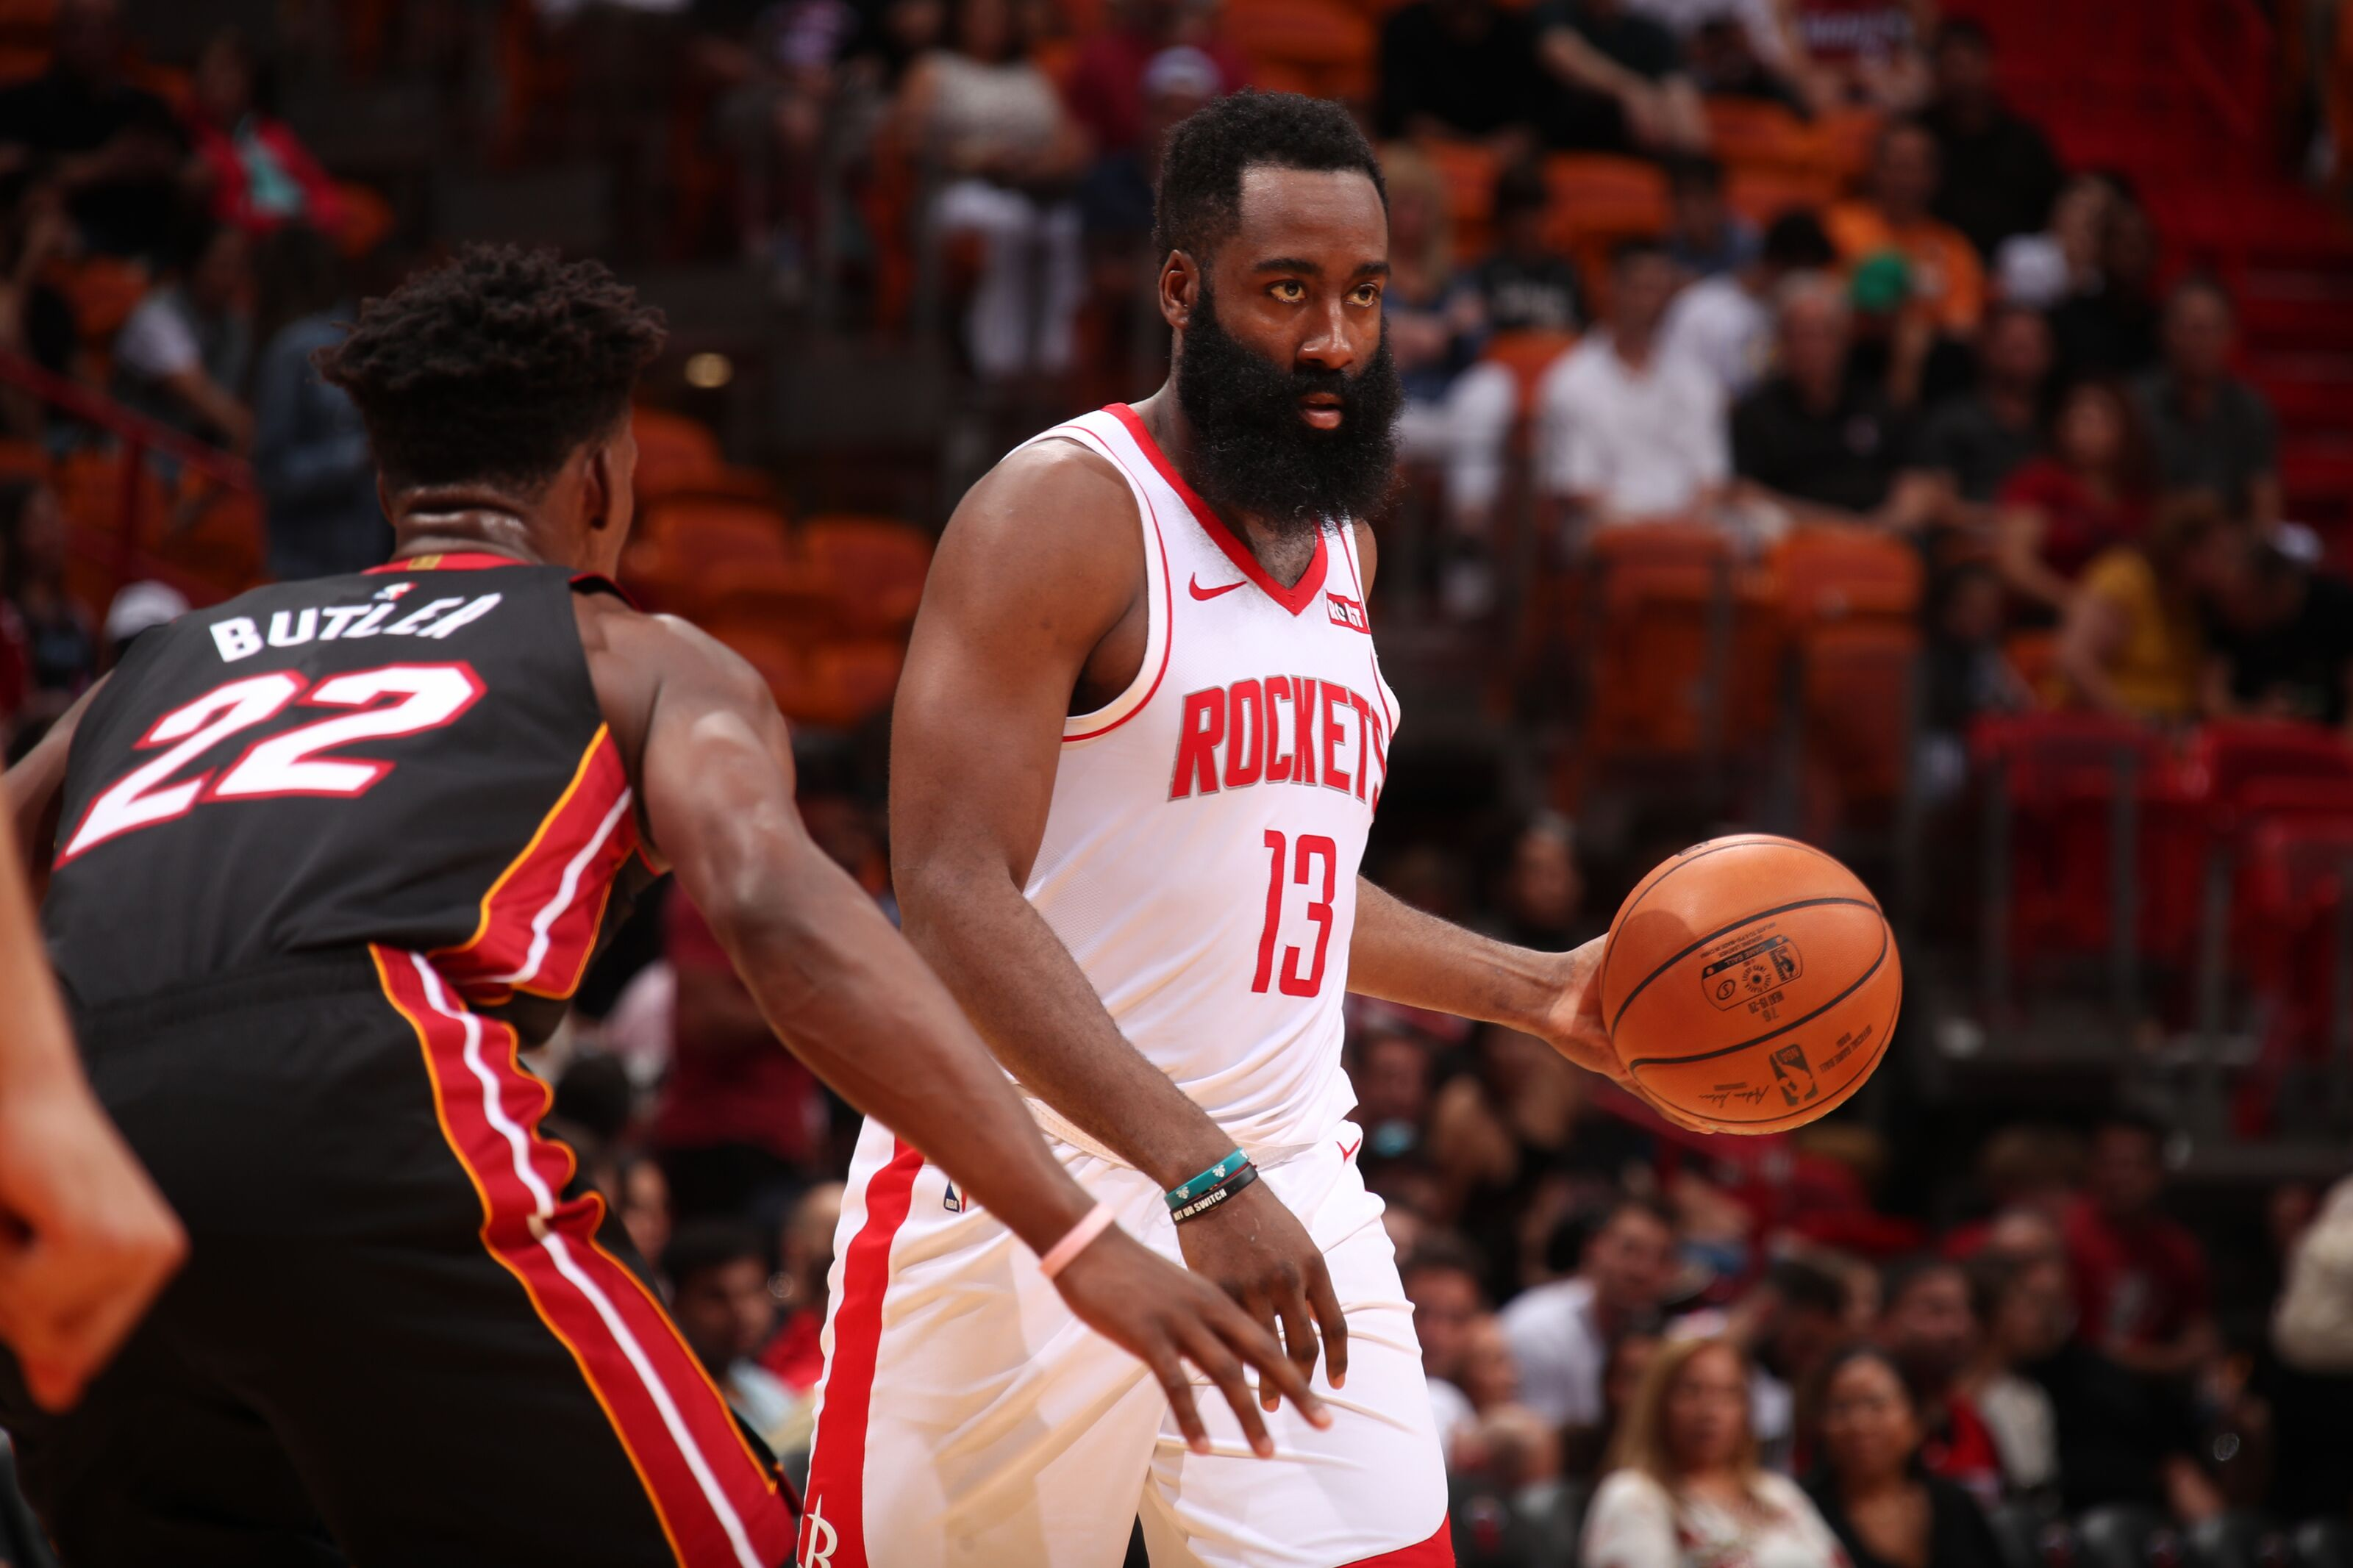 Nba betting tips consensus top 10 finish betting tips